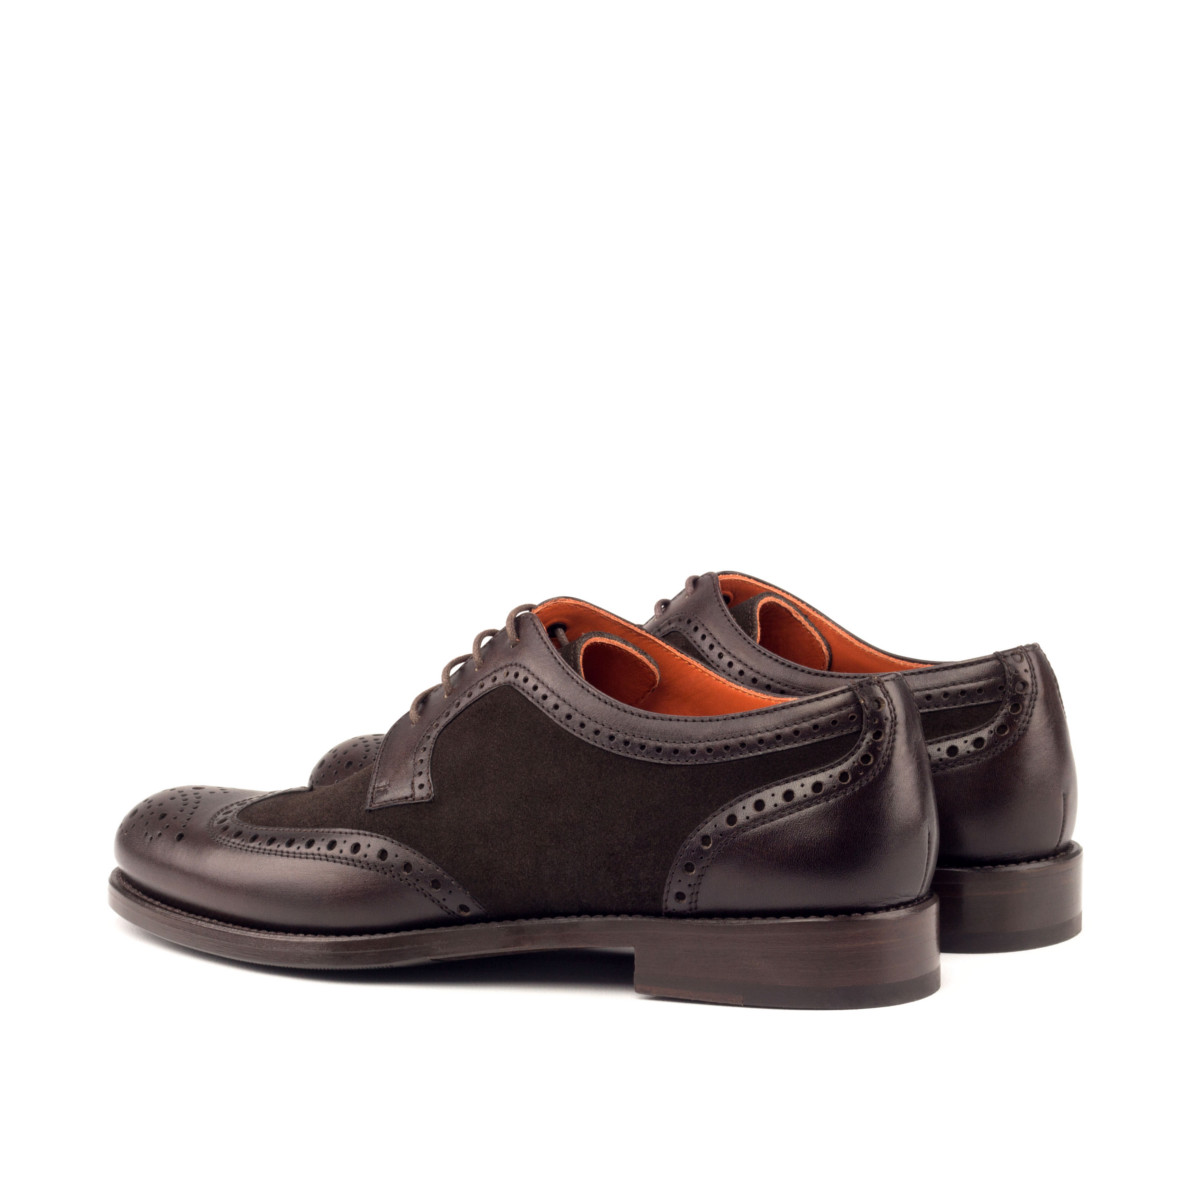 Boxcalf and suede women's derby shoes